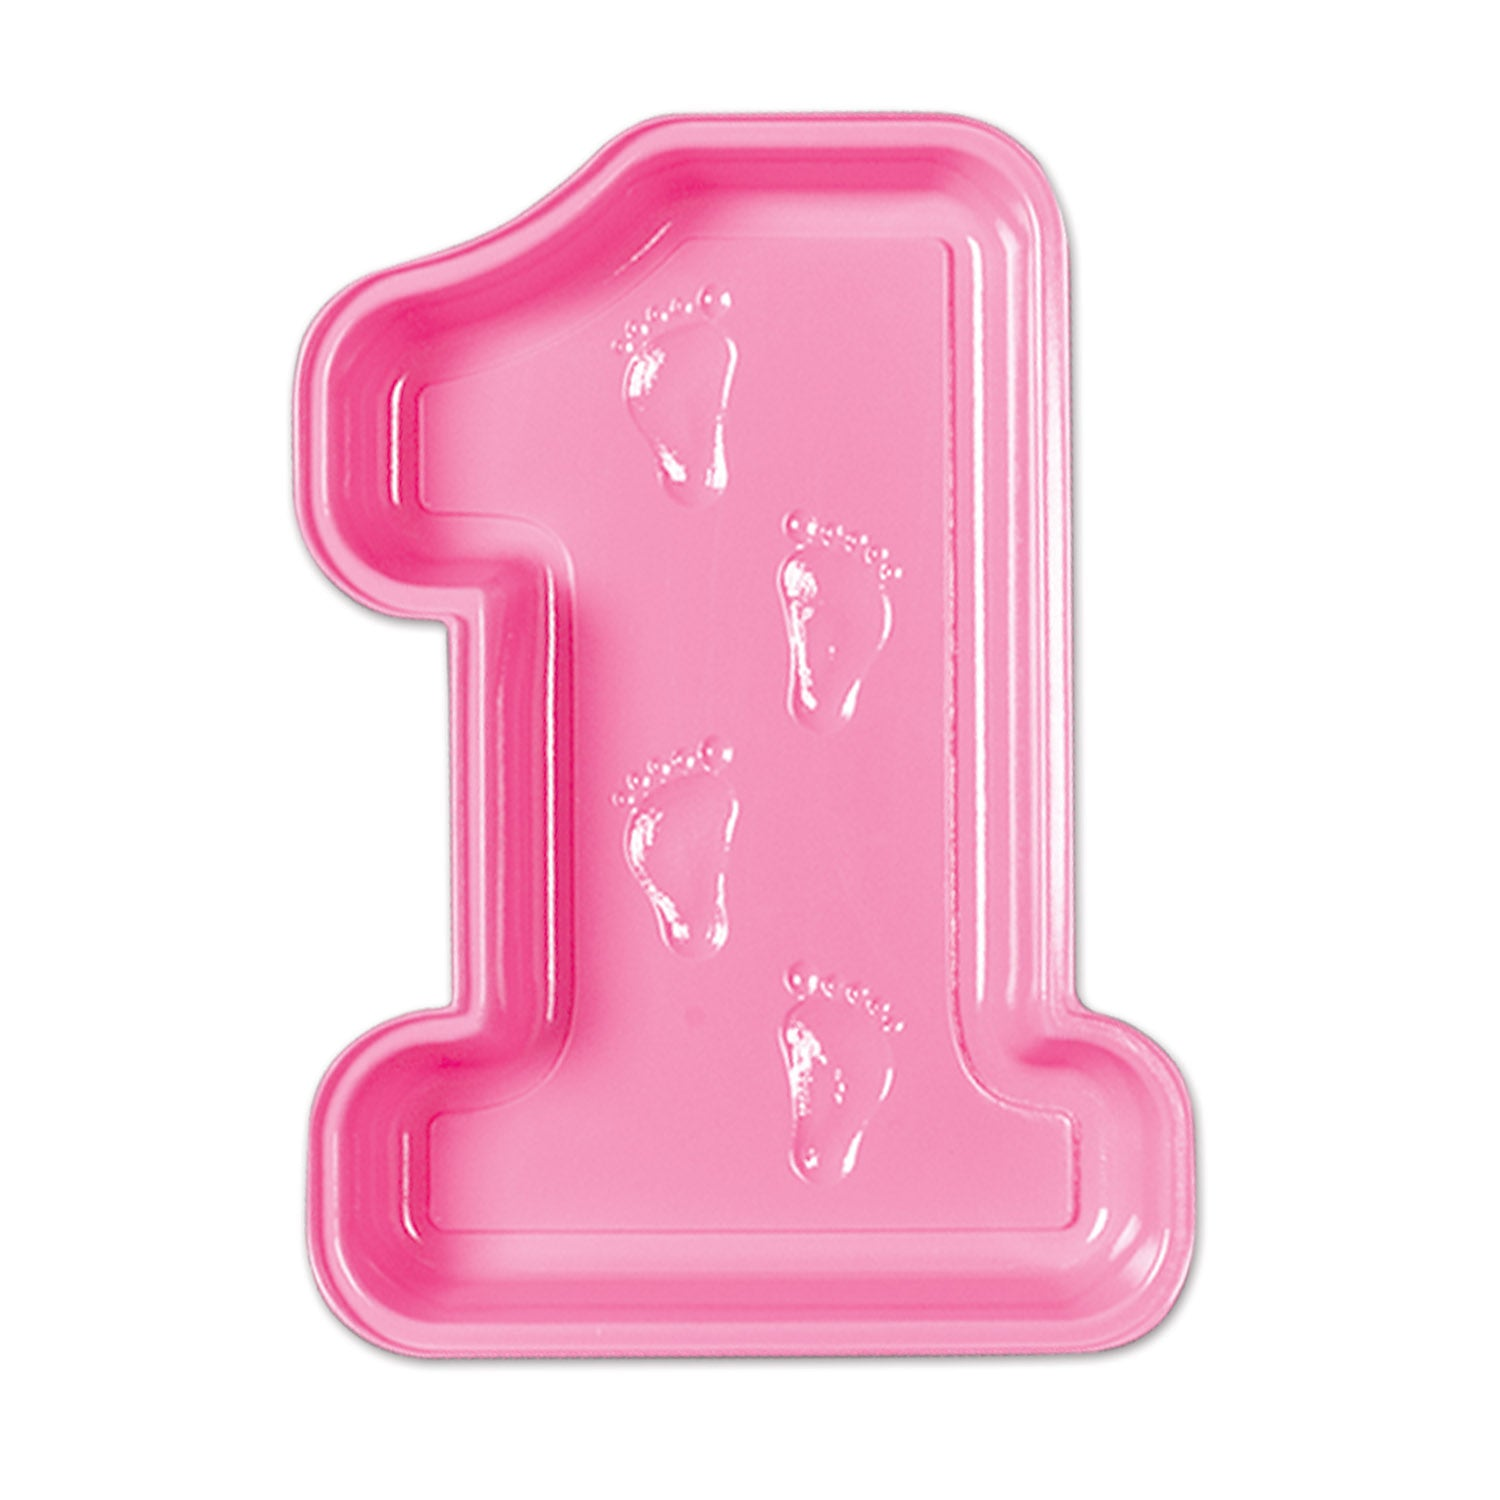 Plastic Baby's 1st Birthday Tray by Beistle - 1st Birthday Party Decorations